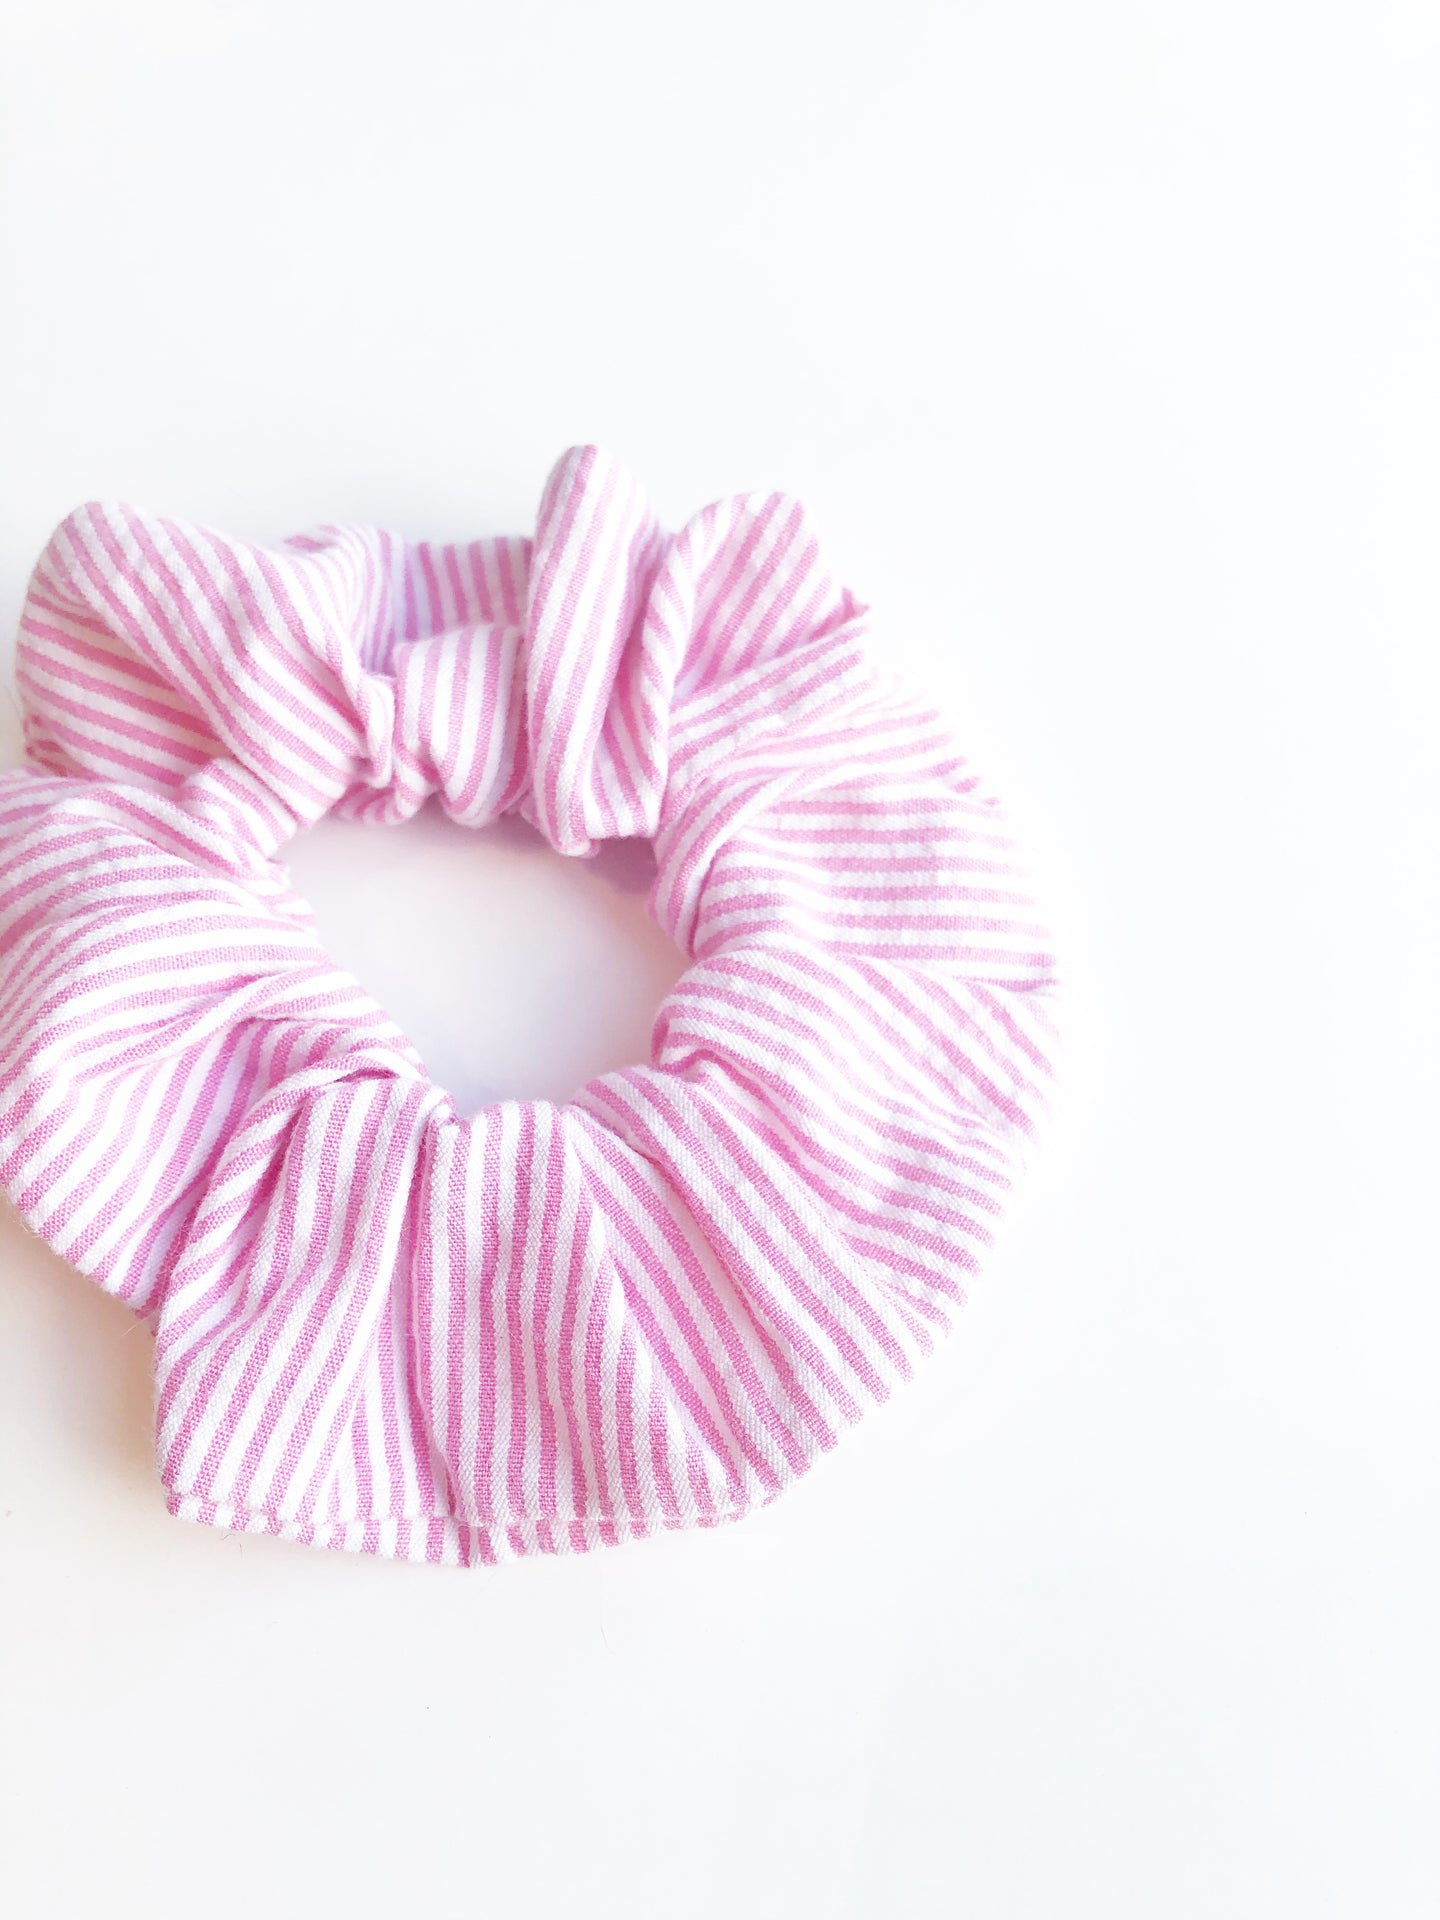 Scrunchie - Pink Stripe